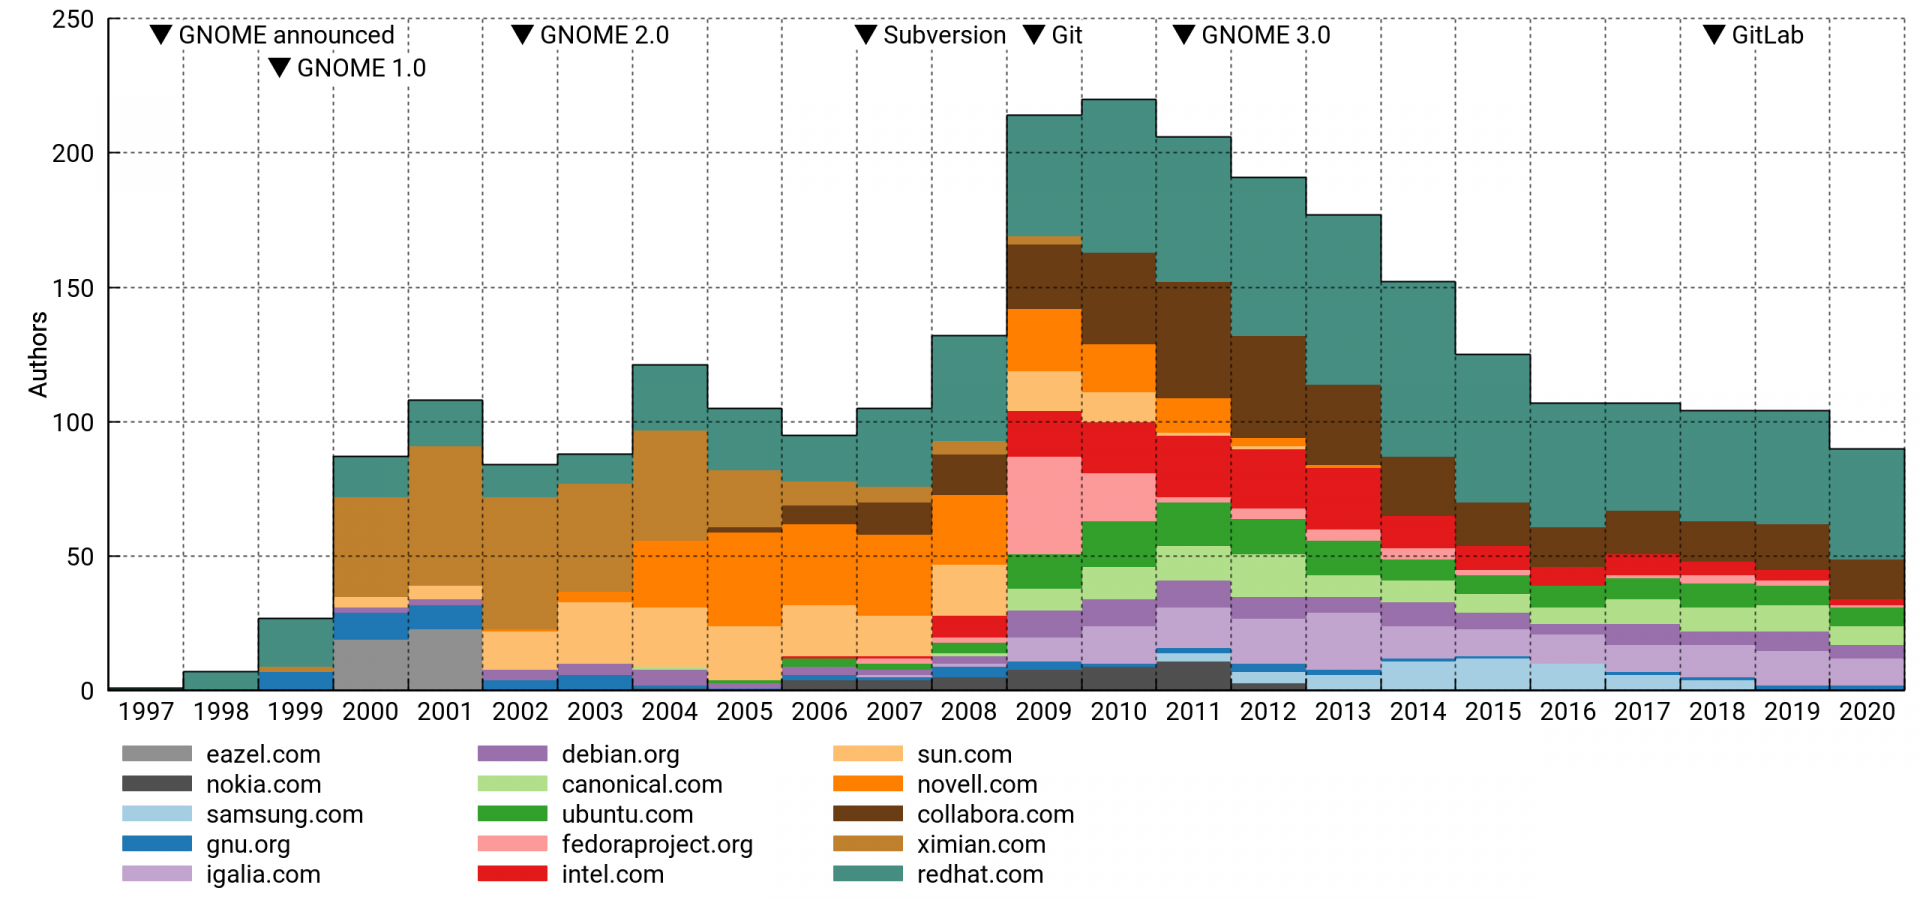 Active GNOME authors per year, top-15 domain cohorts